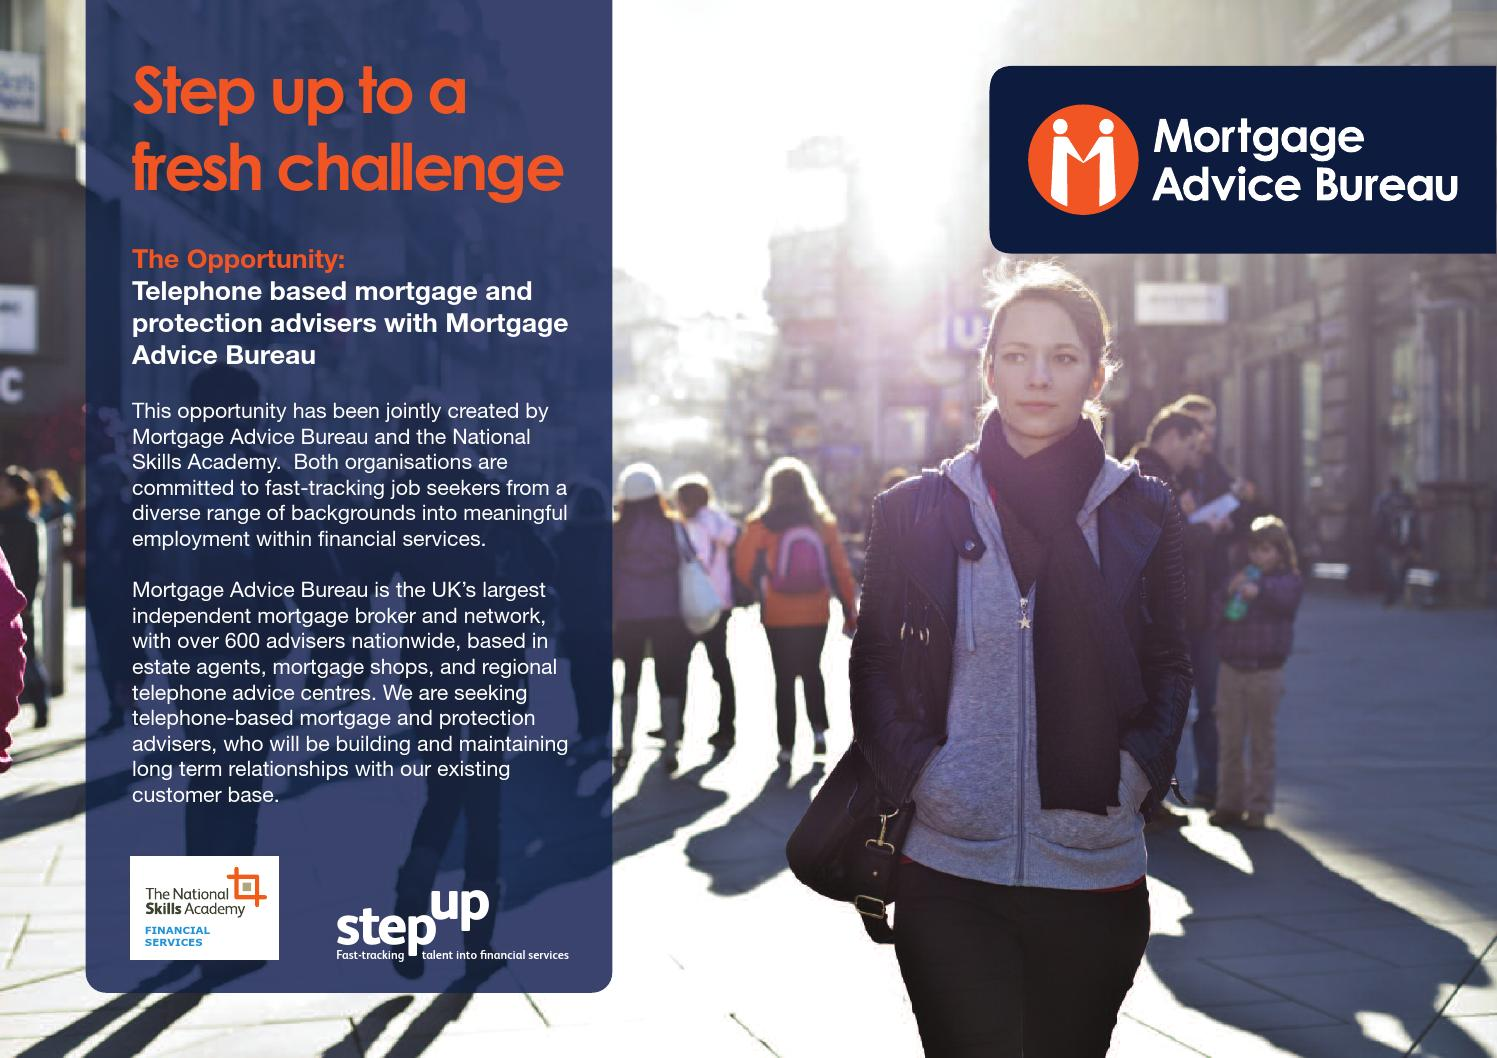 Mortgage advice bureau bath by garyferris335 issuu